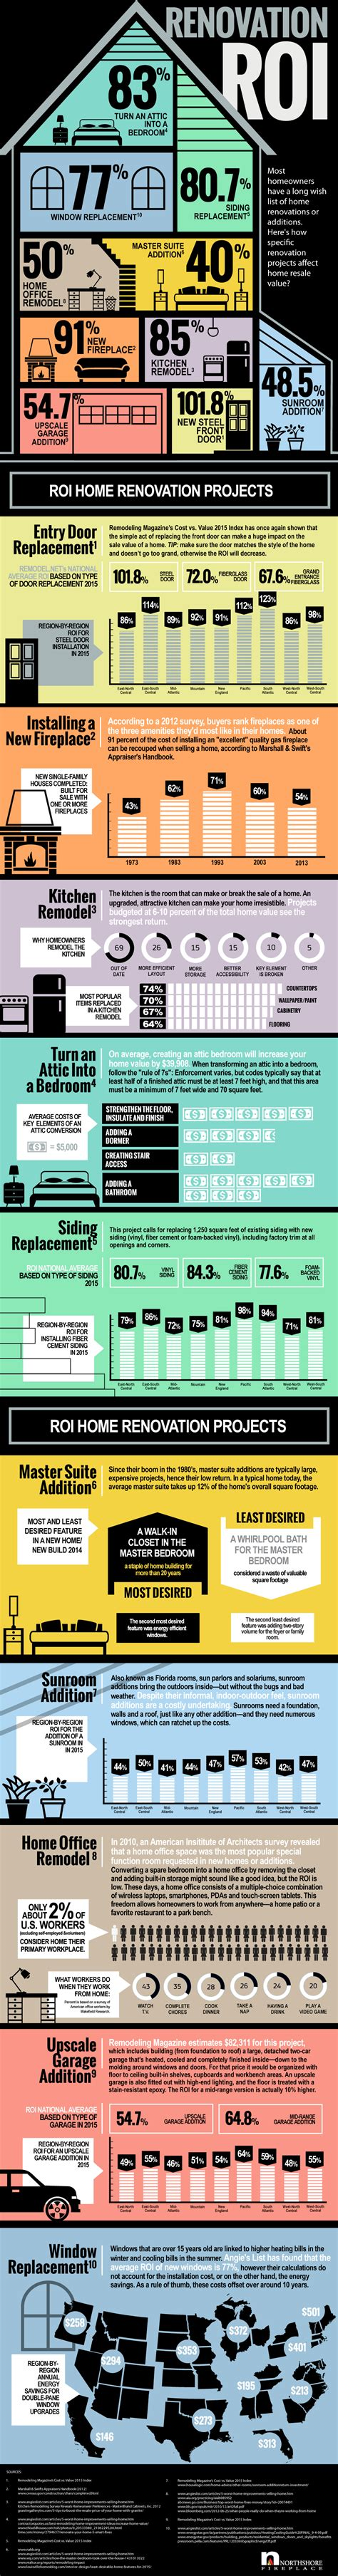 renovation roi infograph klam construction klamco